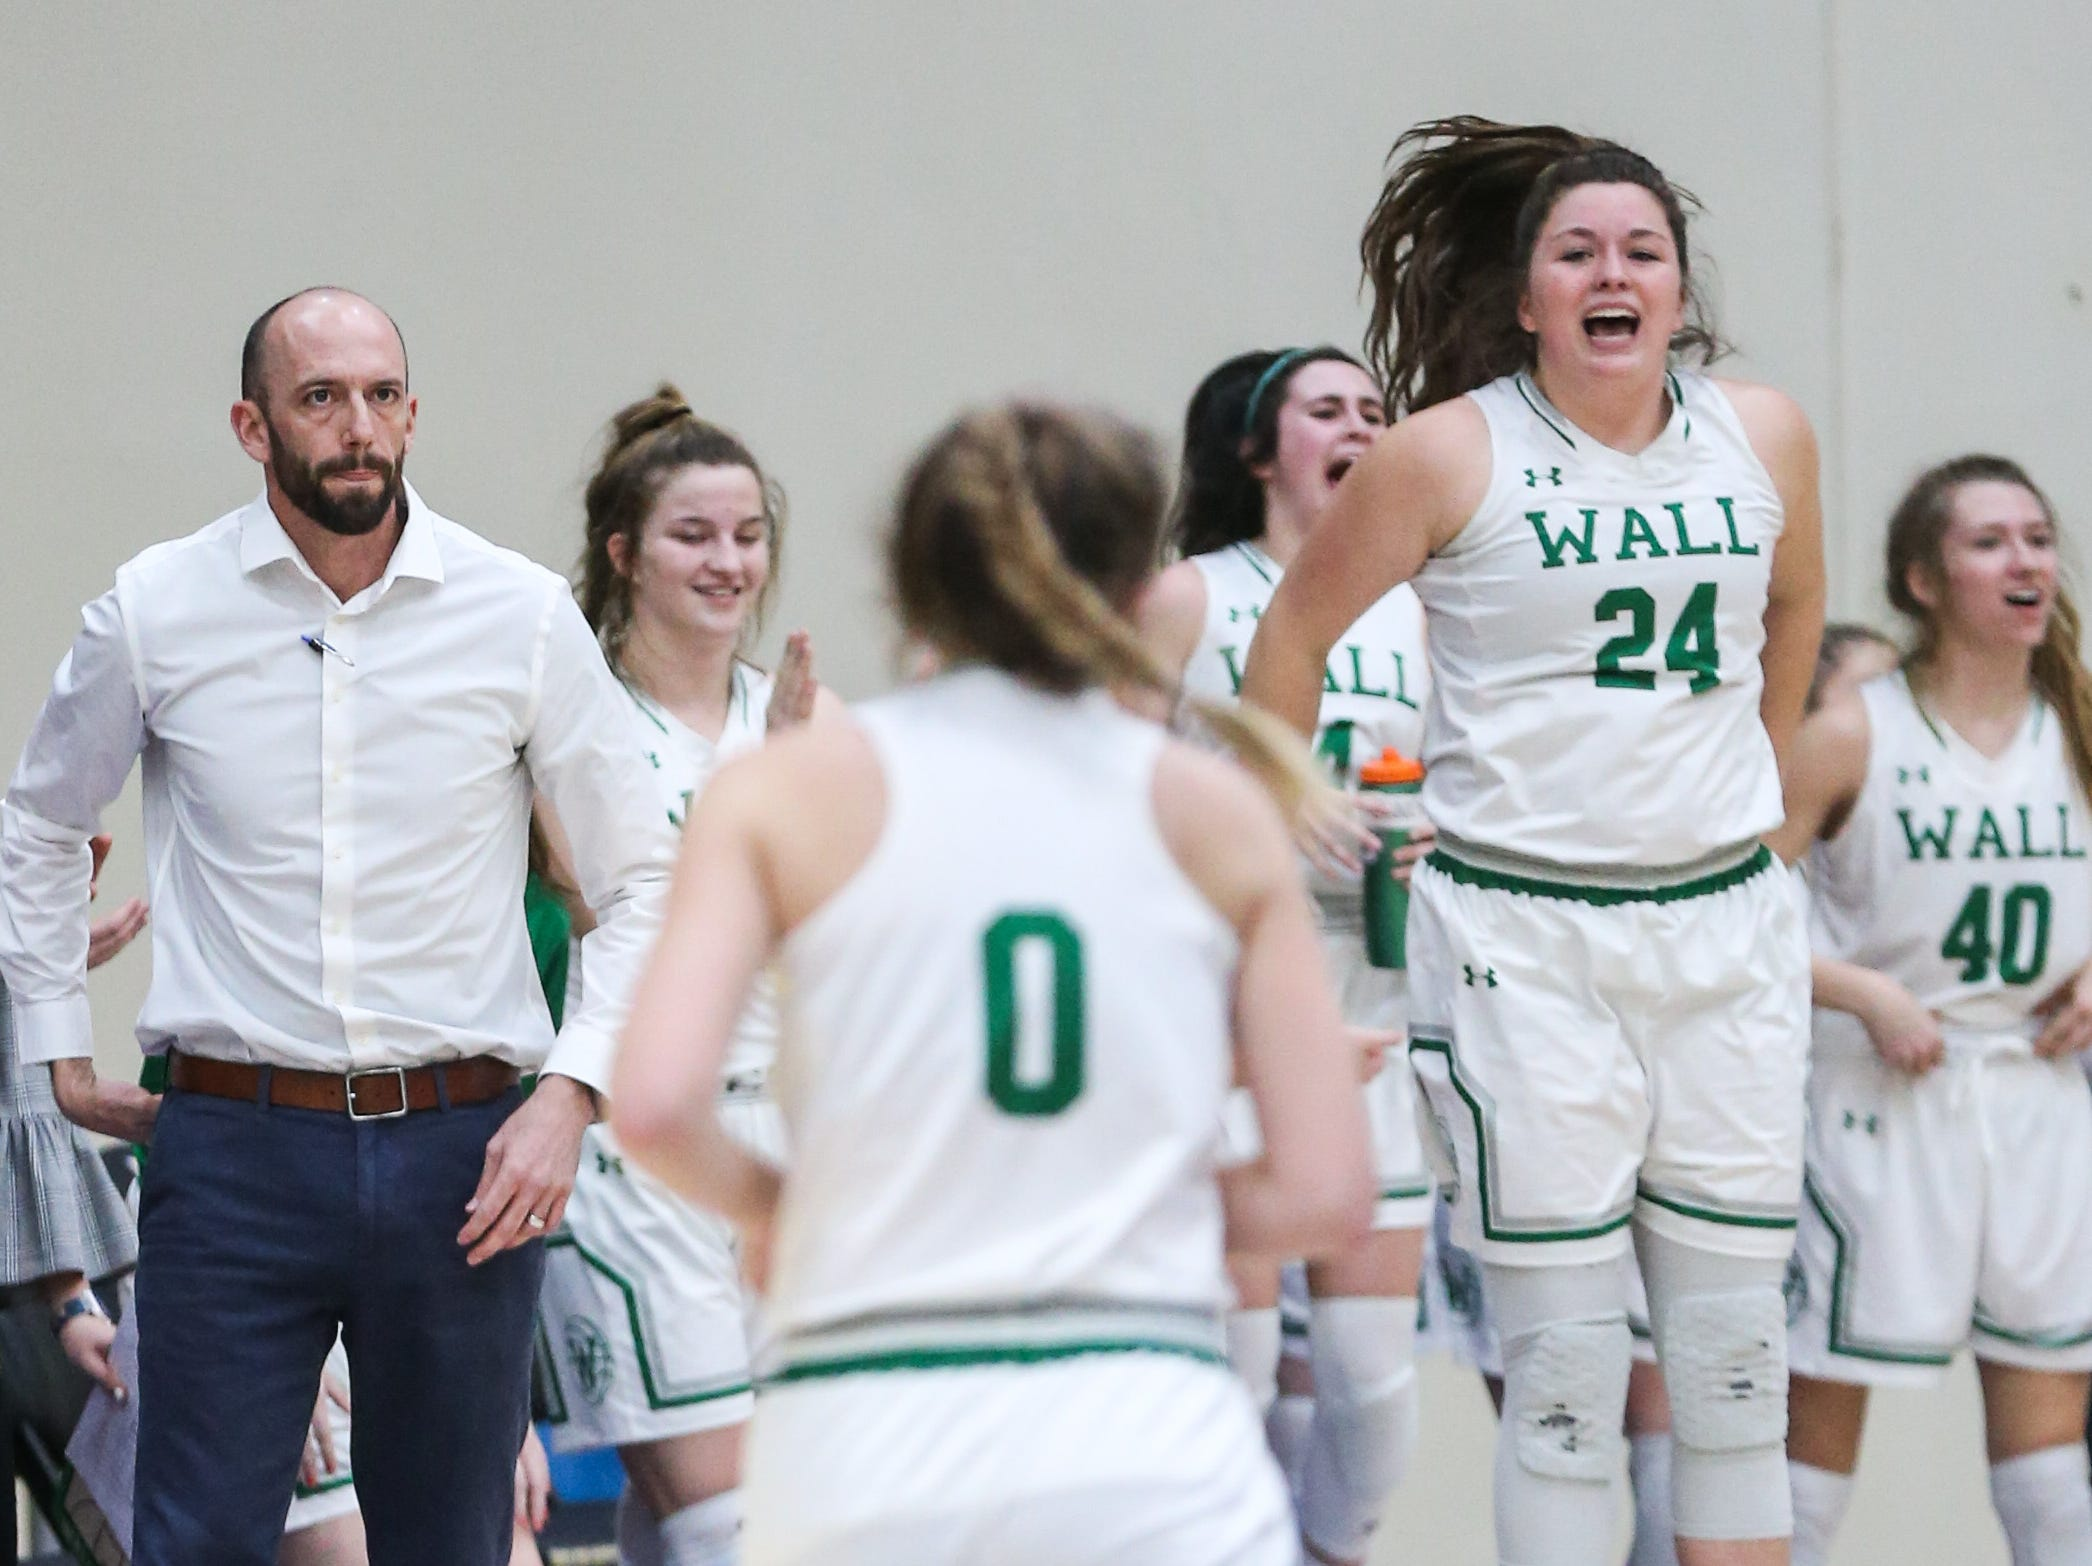 Wall players at half time during the 1-3A regional tournament against Brock Friday, Feb. 22, 2019, at Wayland Baptist University in Plainview.